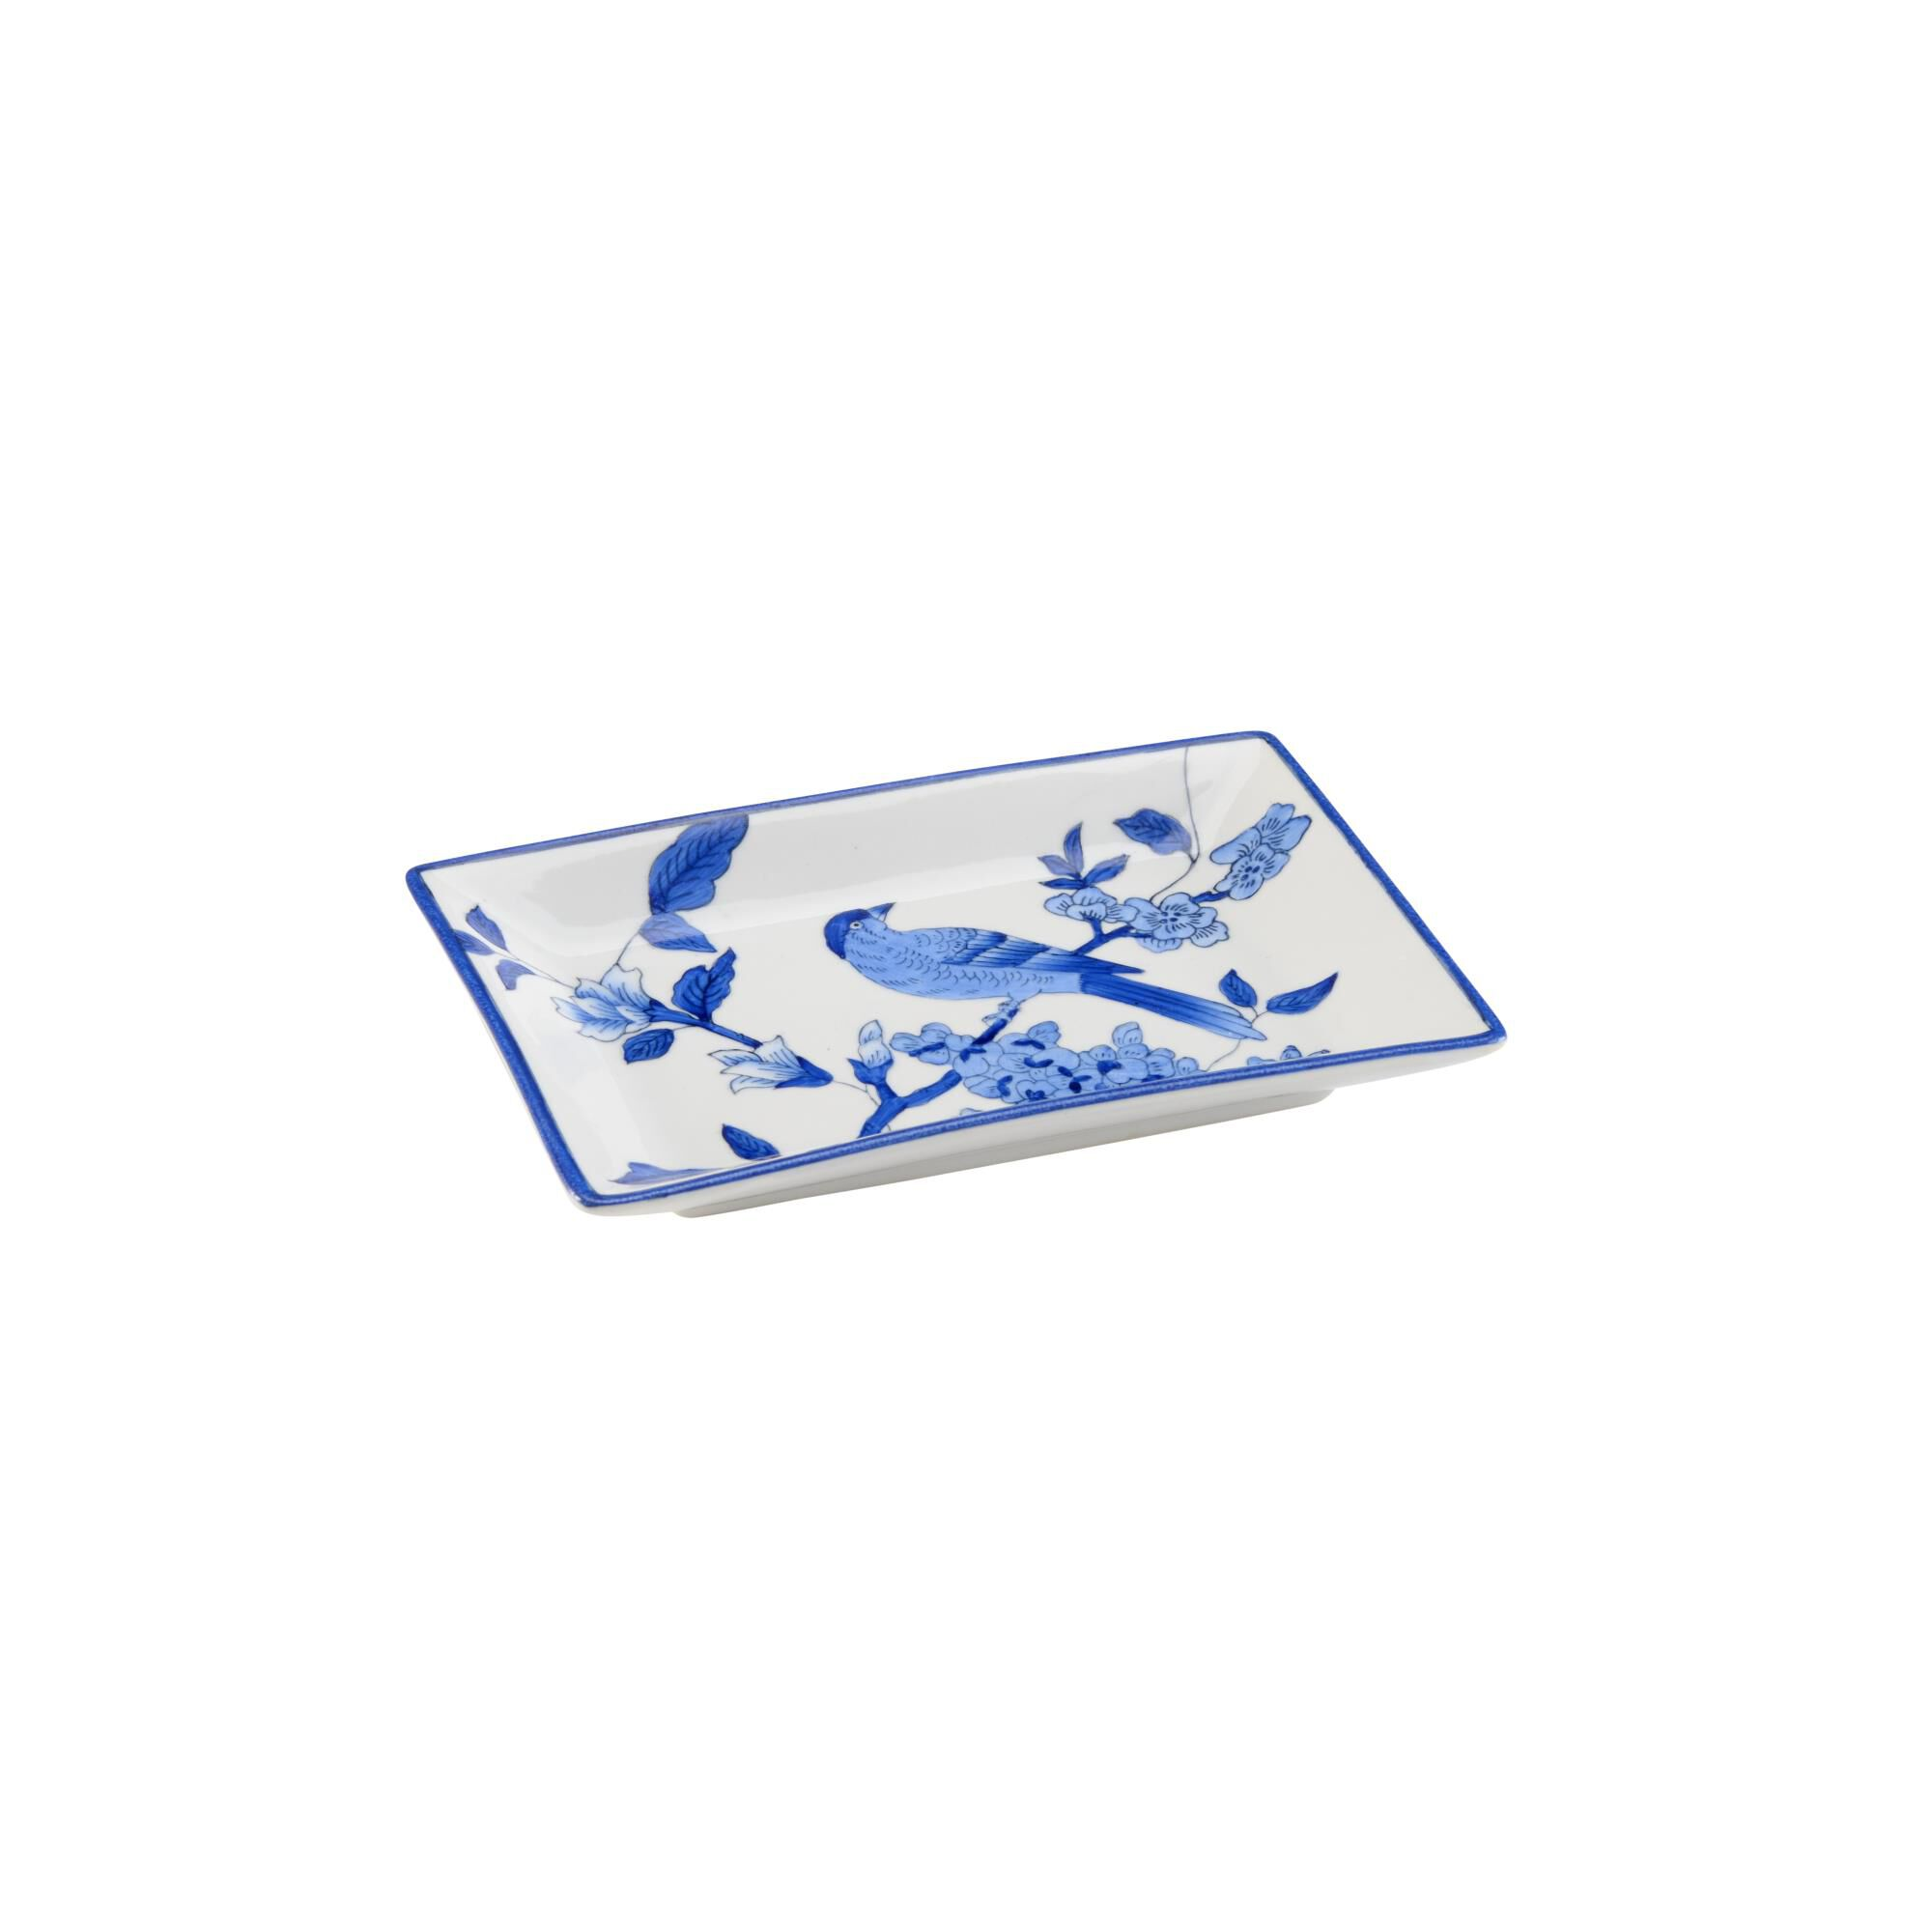 Chelsea House BLUE BIRD TRAY (LG) Tray - 383795 - Traditional (2275171) photo